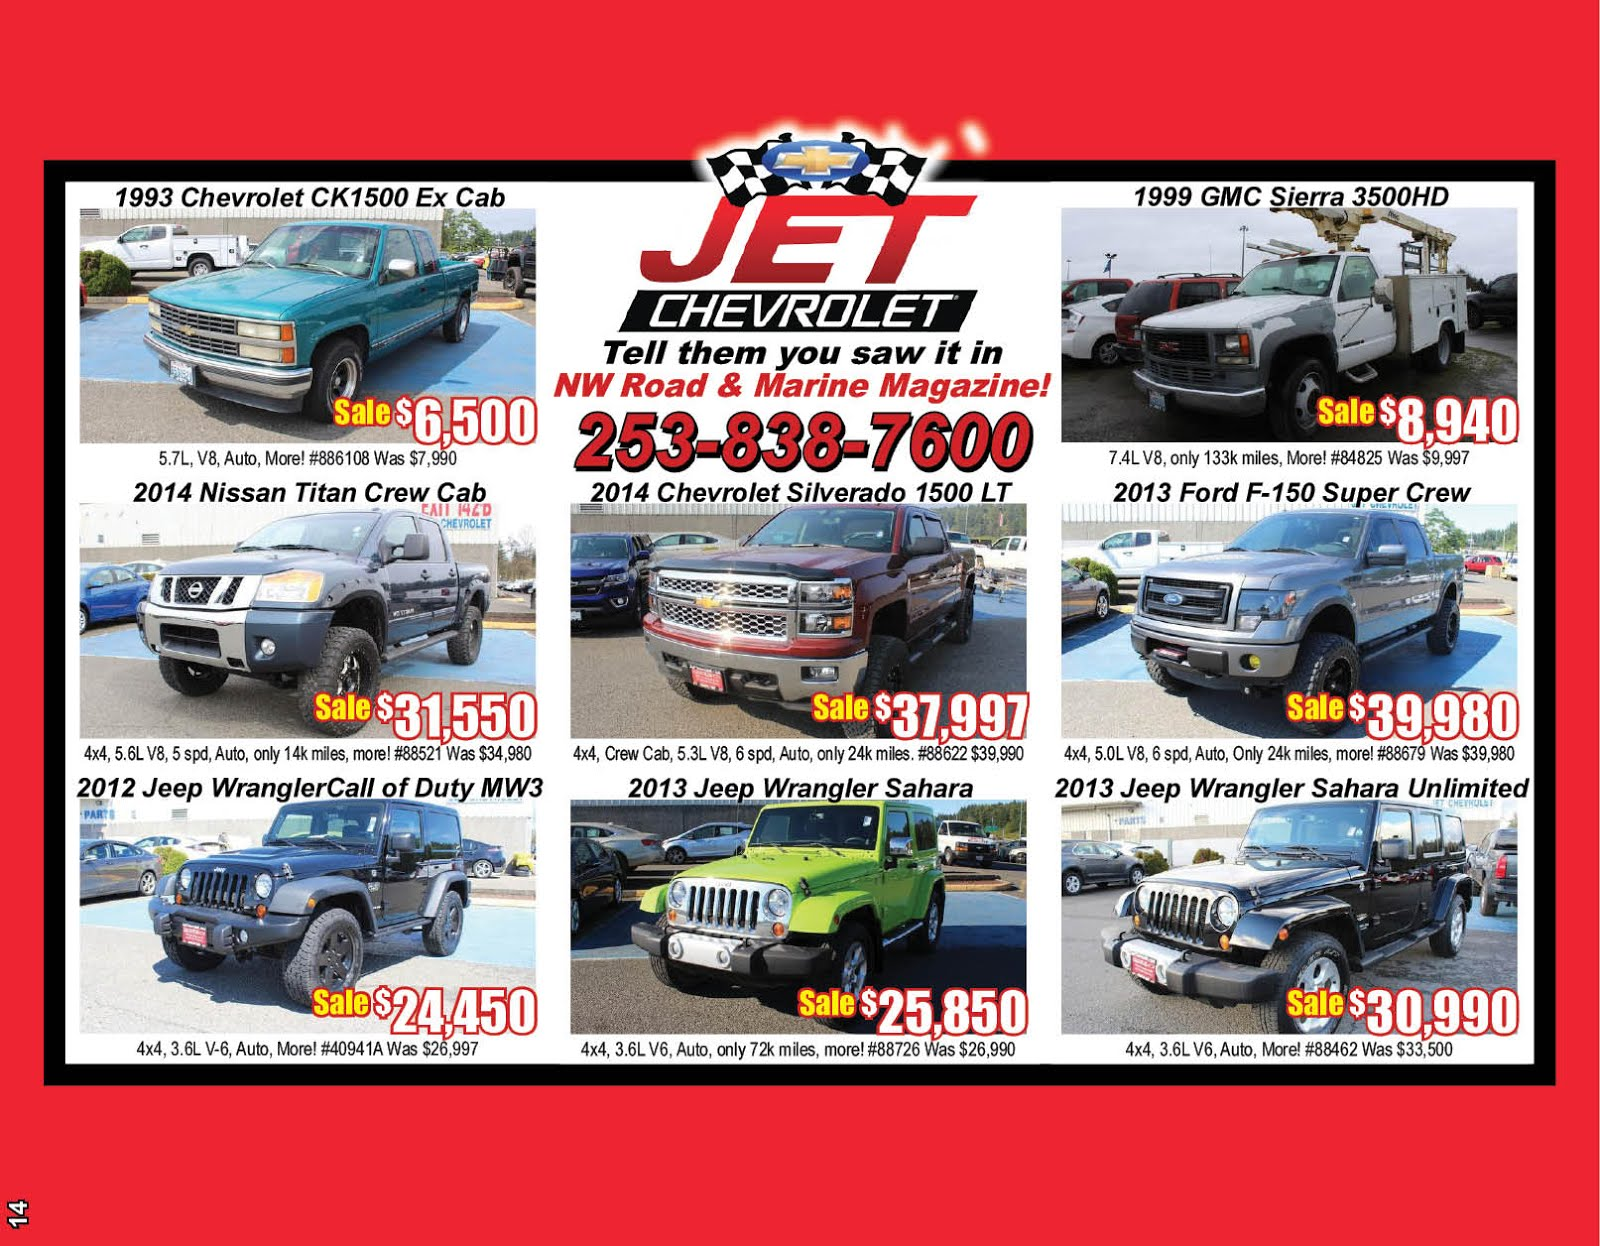 Jet Chevrolet Pre-Owned Truck Sale!!